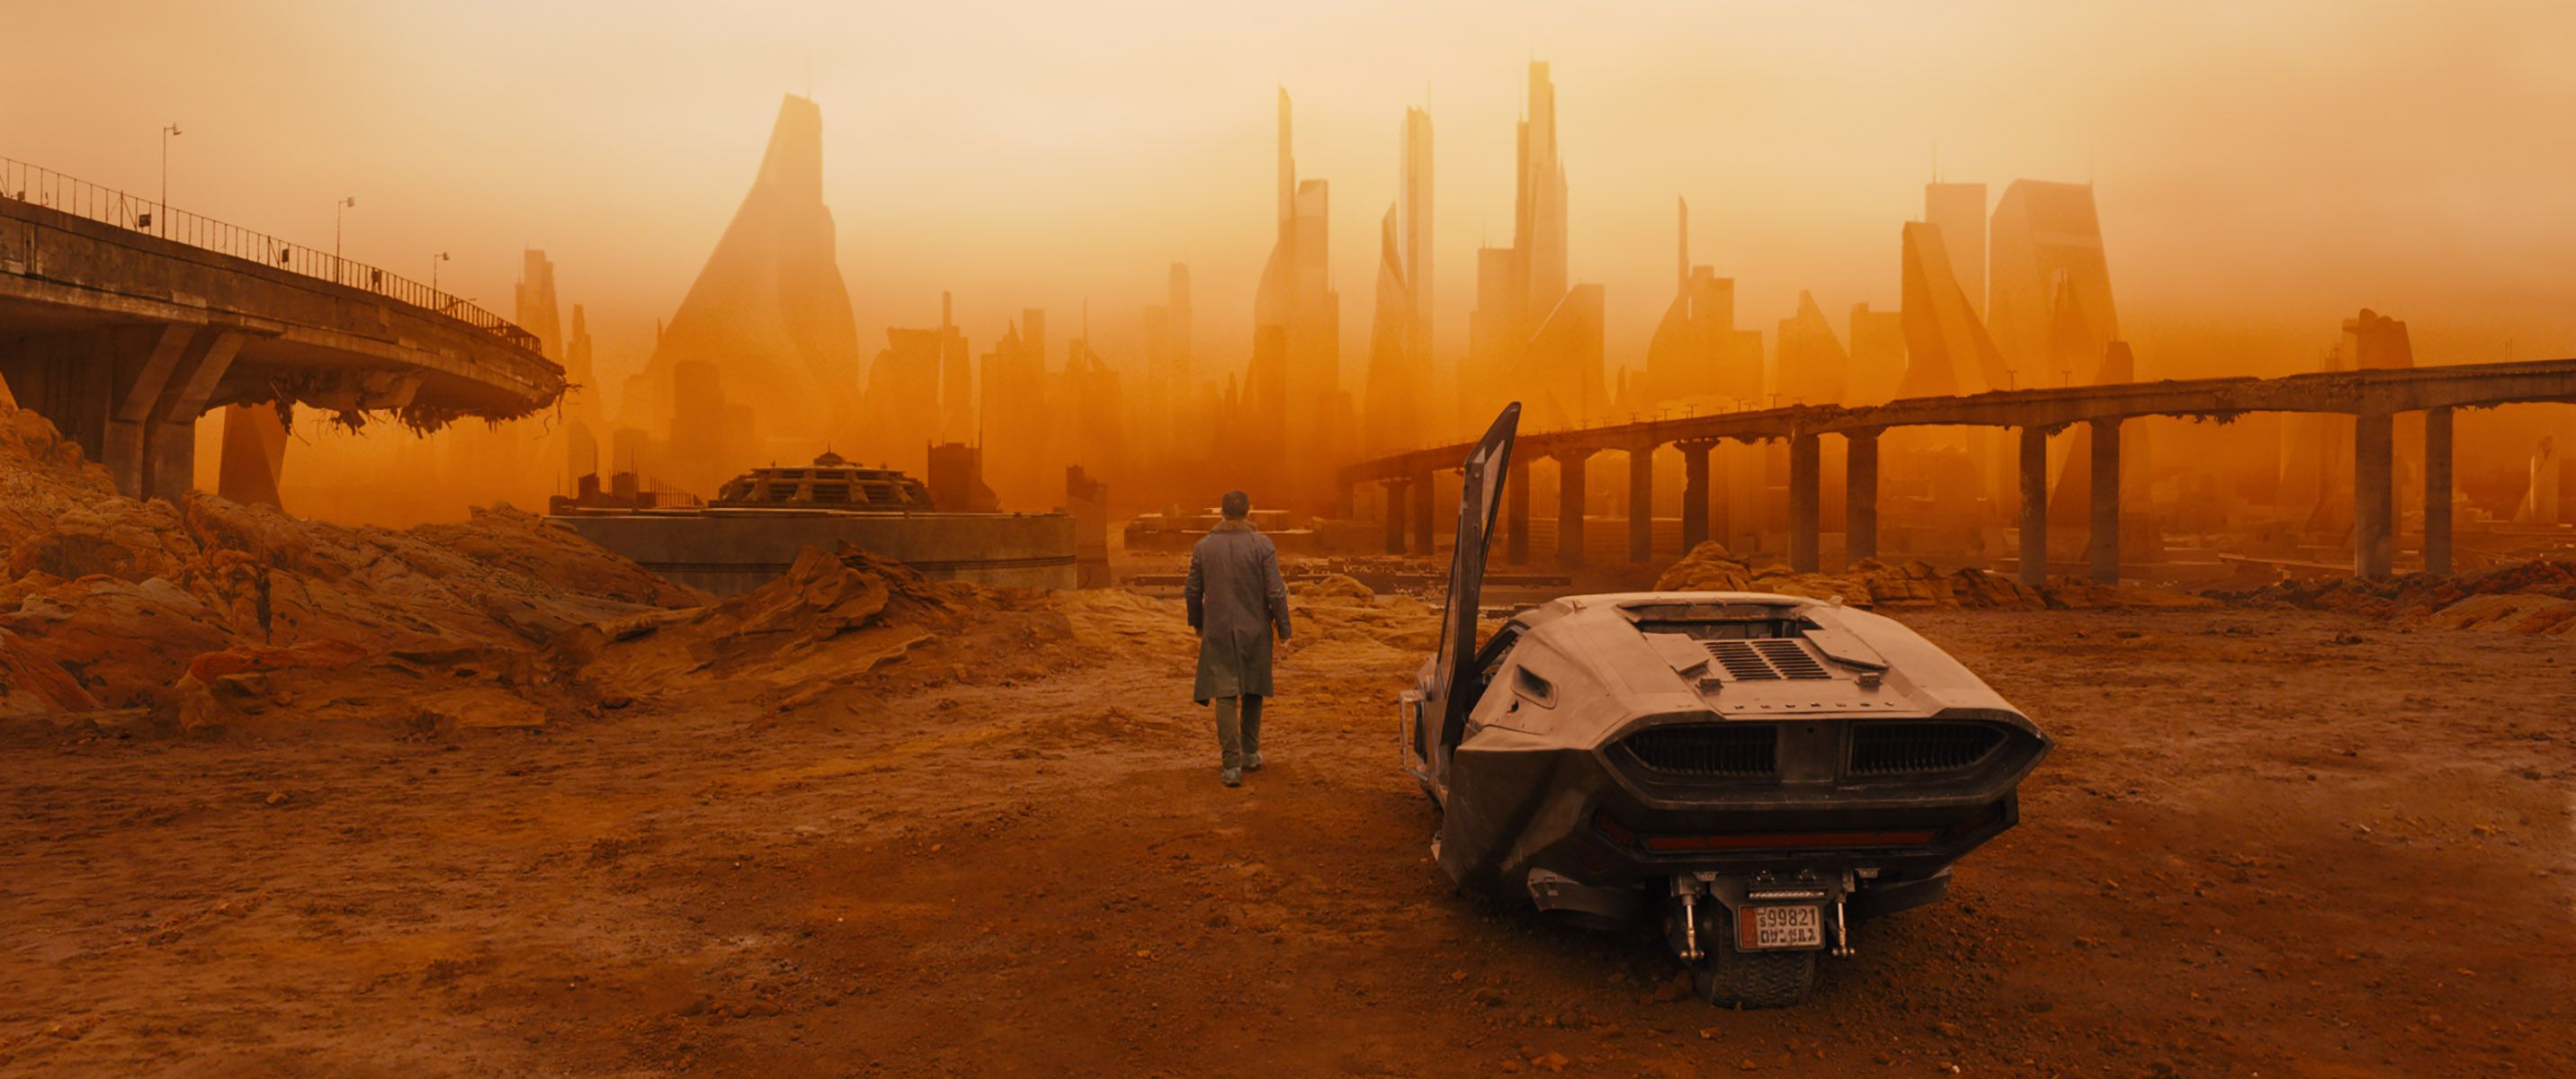 Blade Runner 2049 Wallpaper For Iphone Minionswallpaper